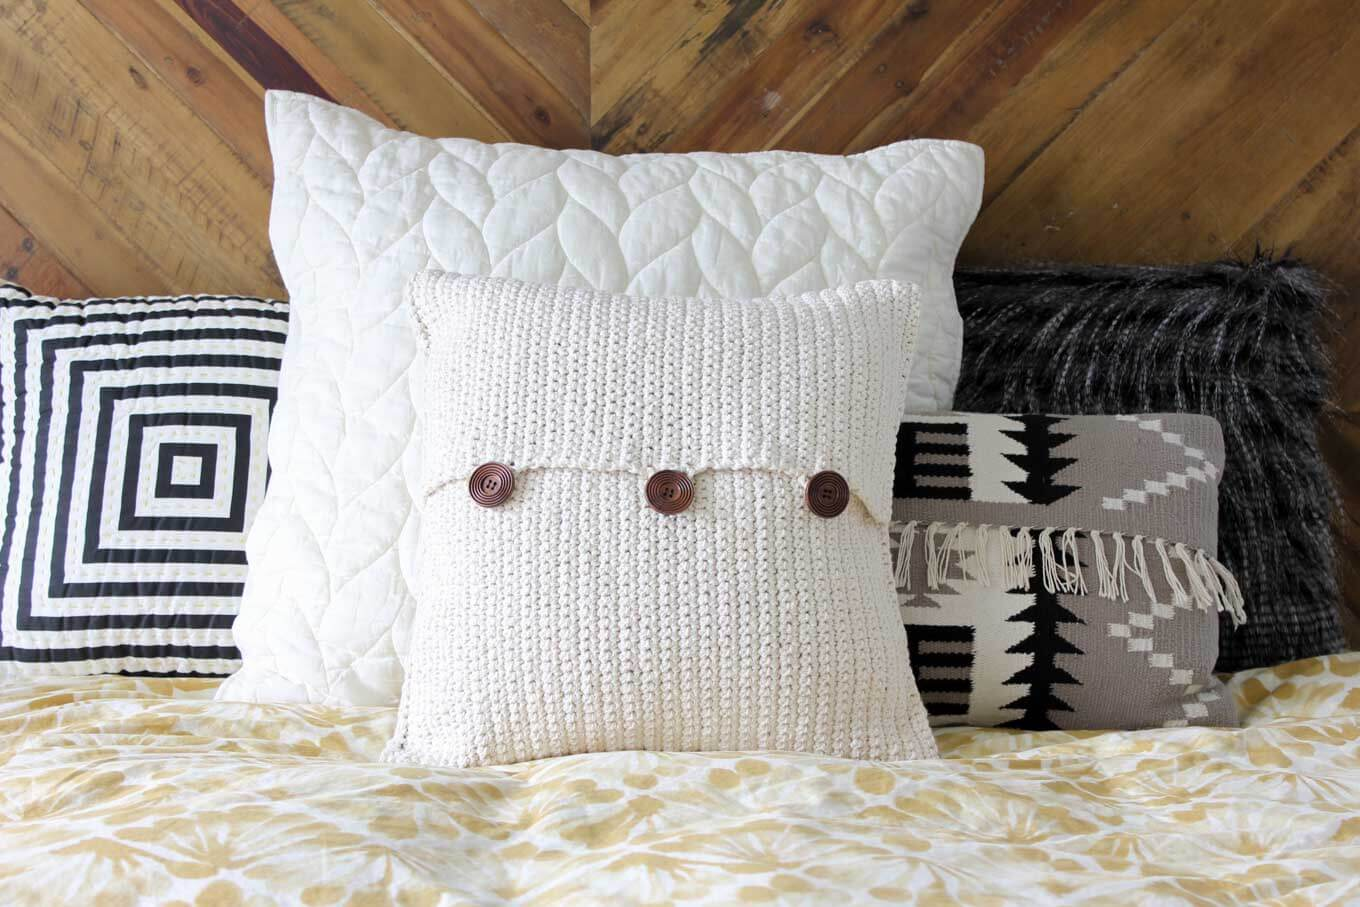 crochet pillow beginner crochet pattern. modern mudcloth pillow with button closures. make  and do megzhsr